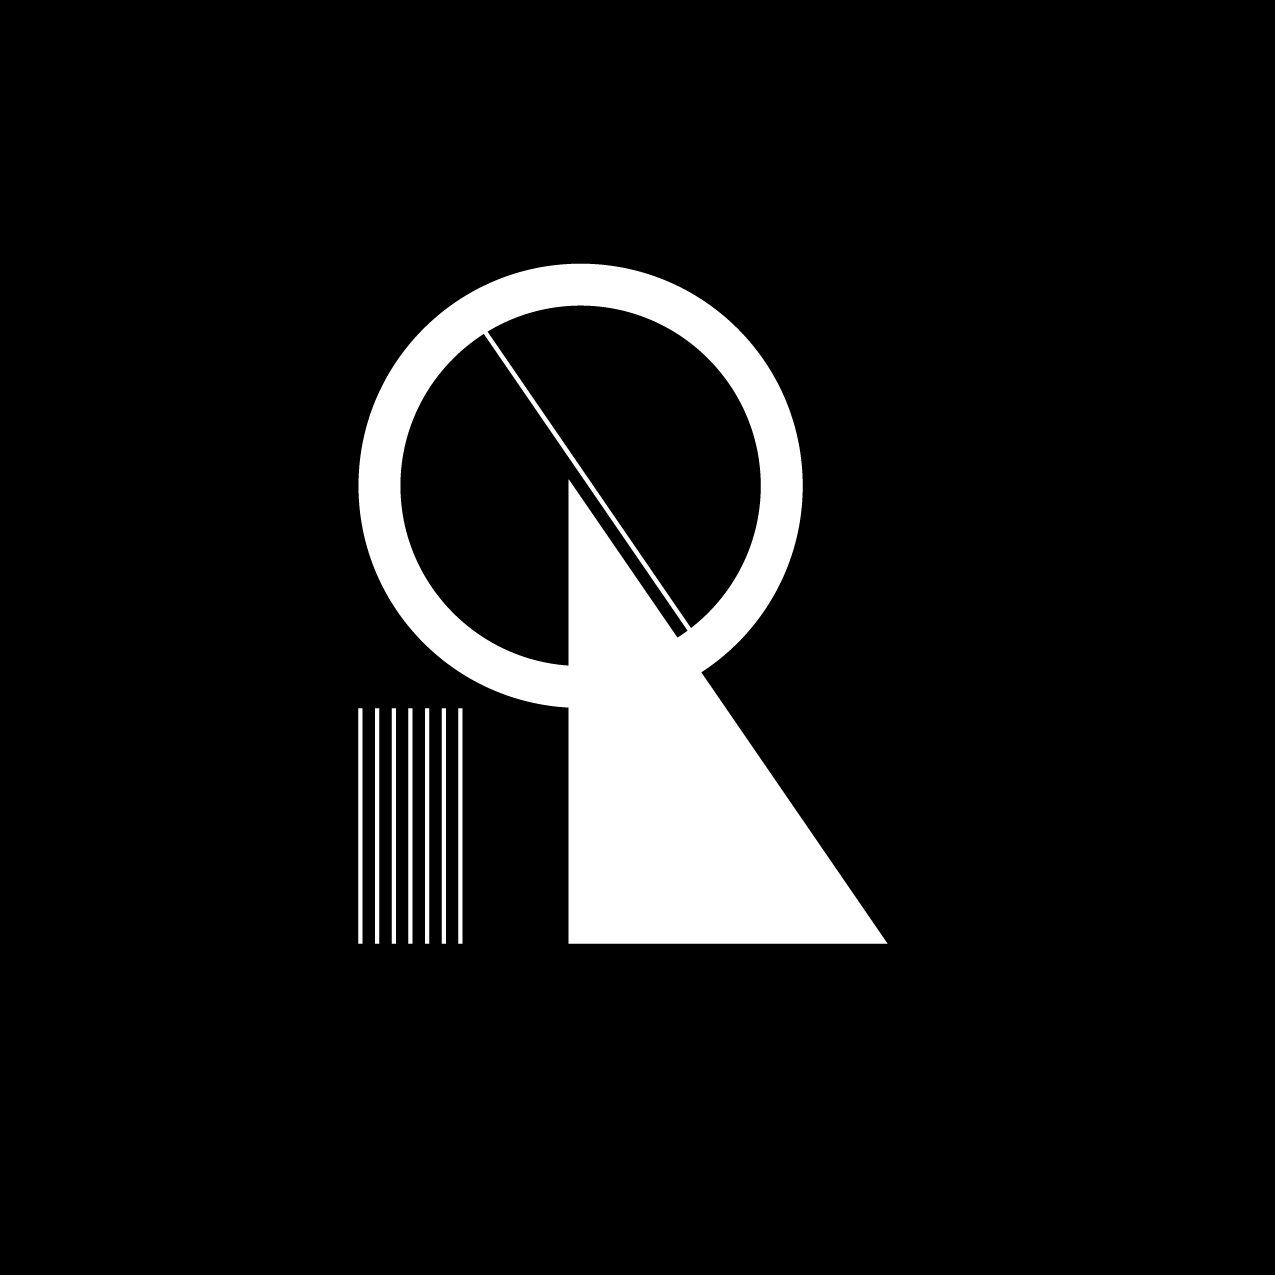 Letter R10 Design by Furia